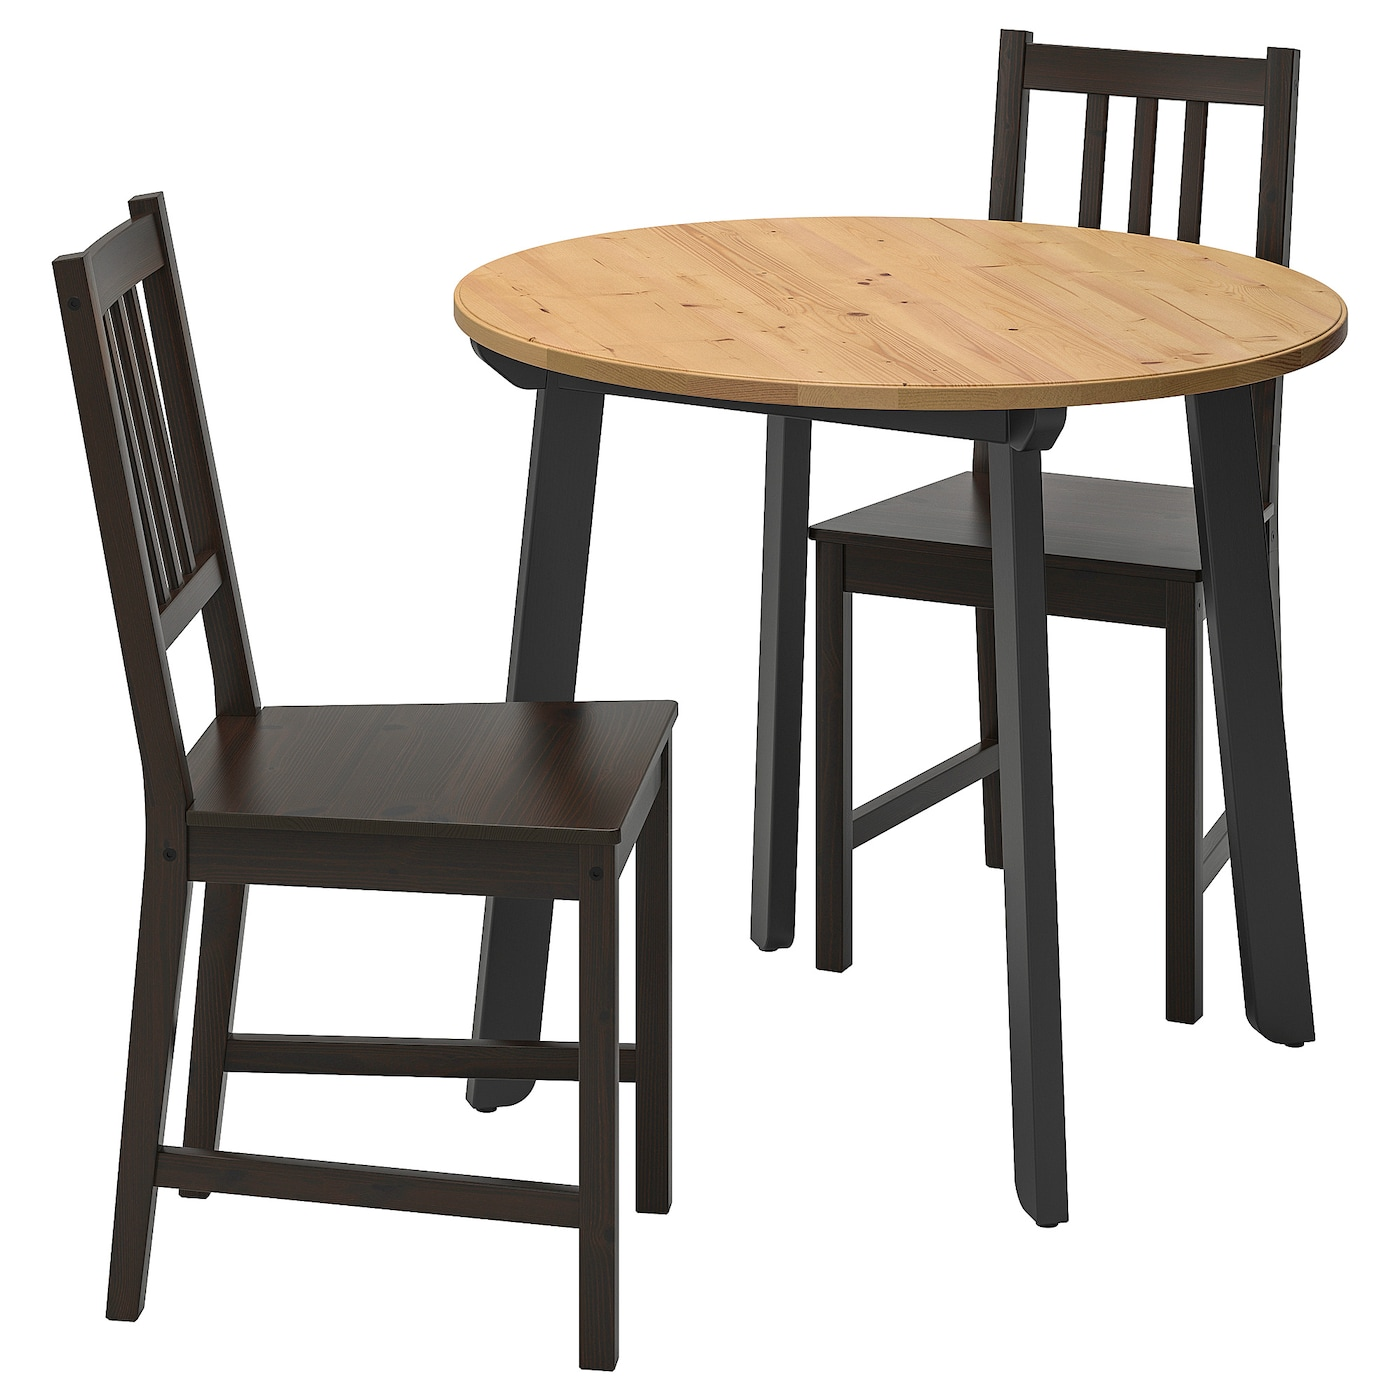 GAMLARED / STEFAN Table and 9 chairs   light antique stain/brown black 9  9/9